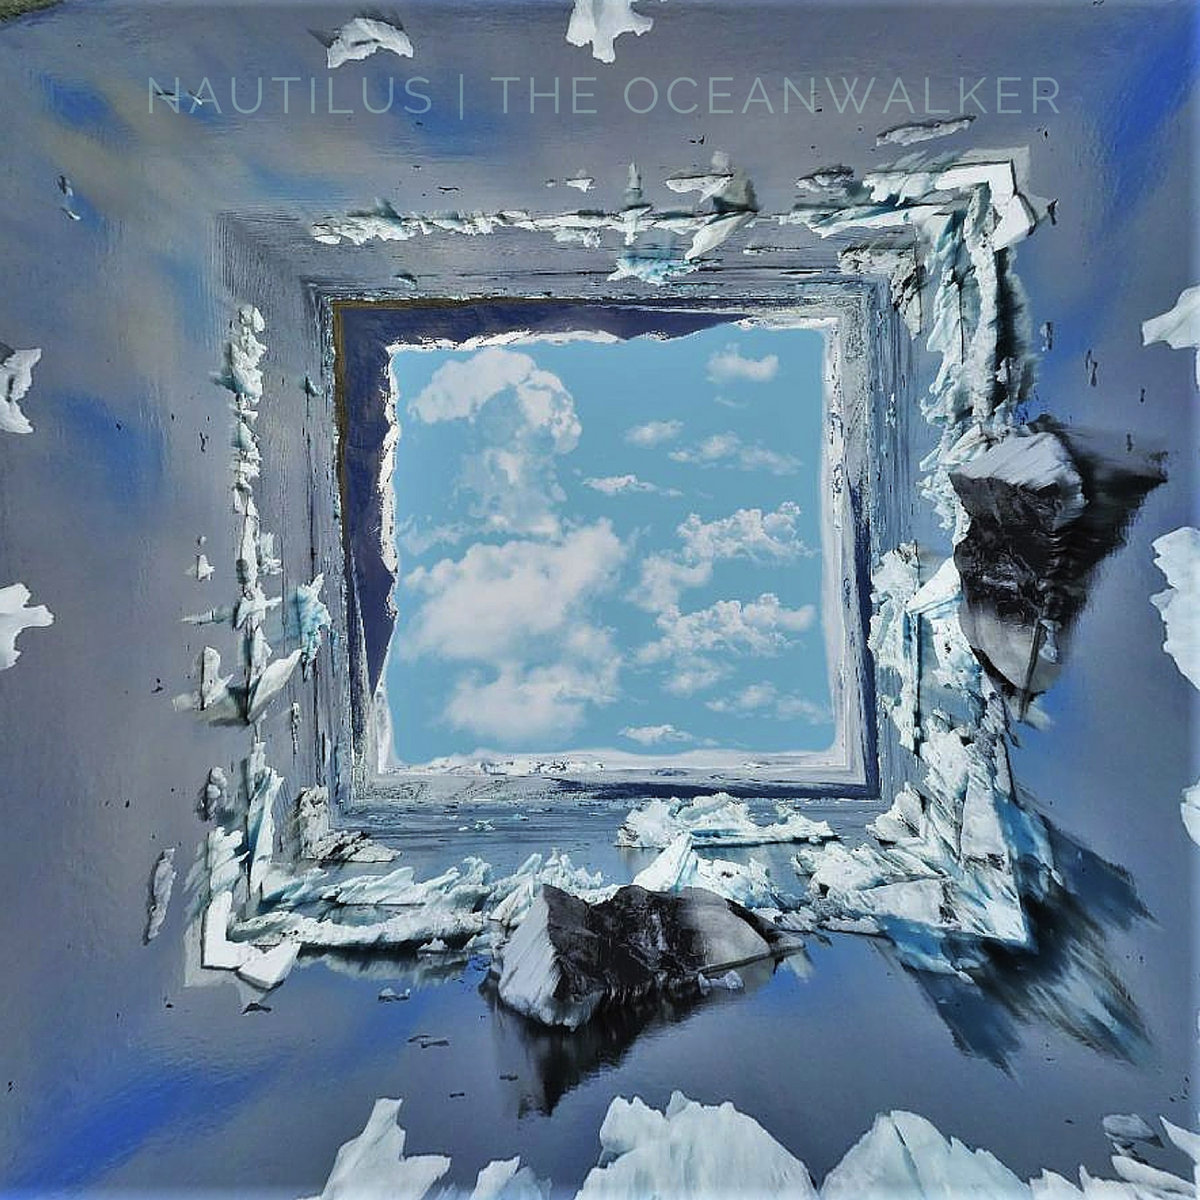 https://officialnautilus.bandcamp.com/album/the-oceanwalker